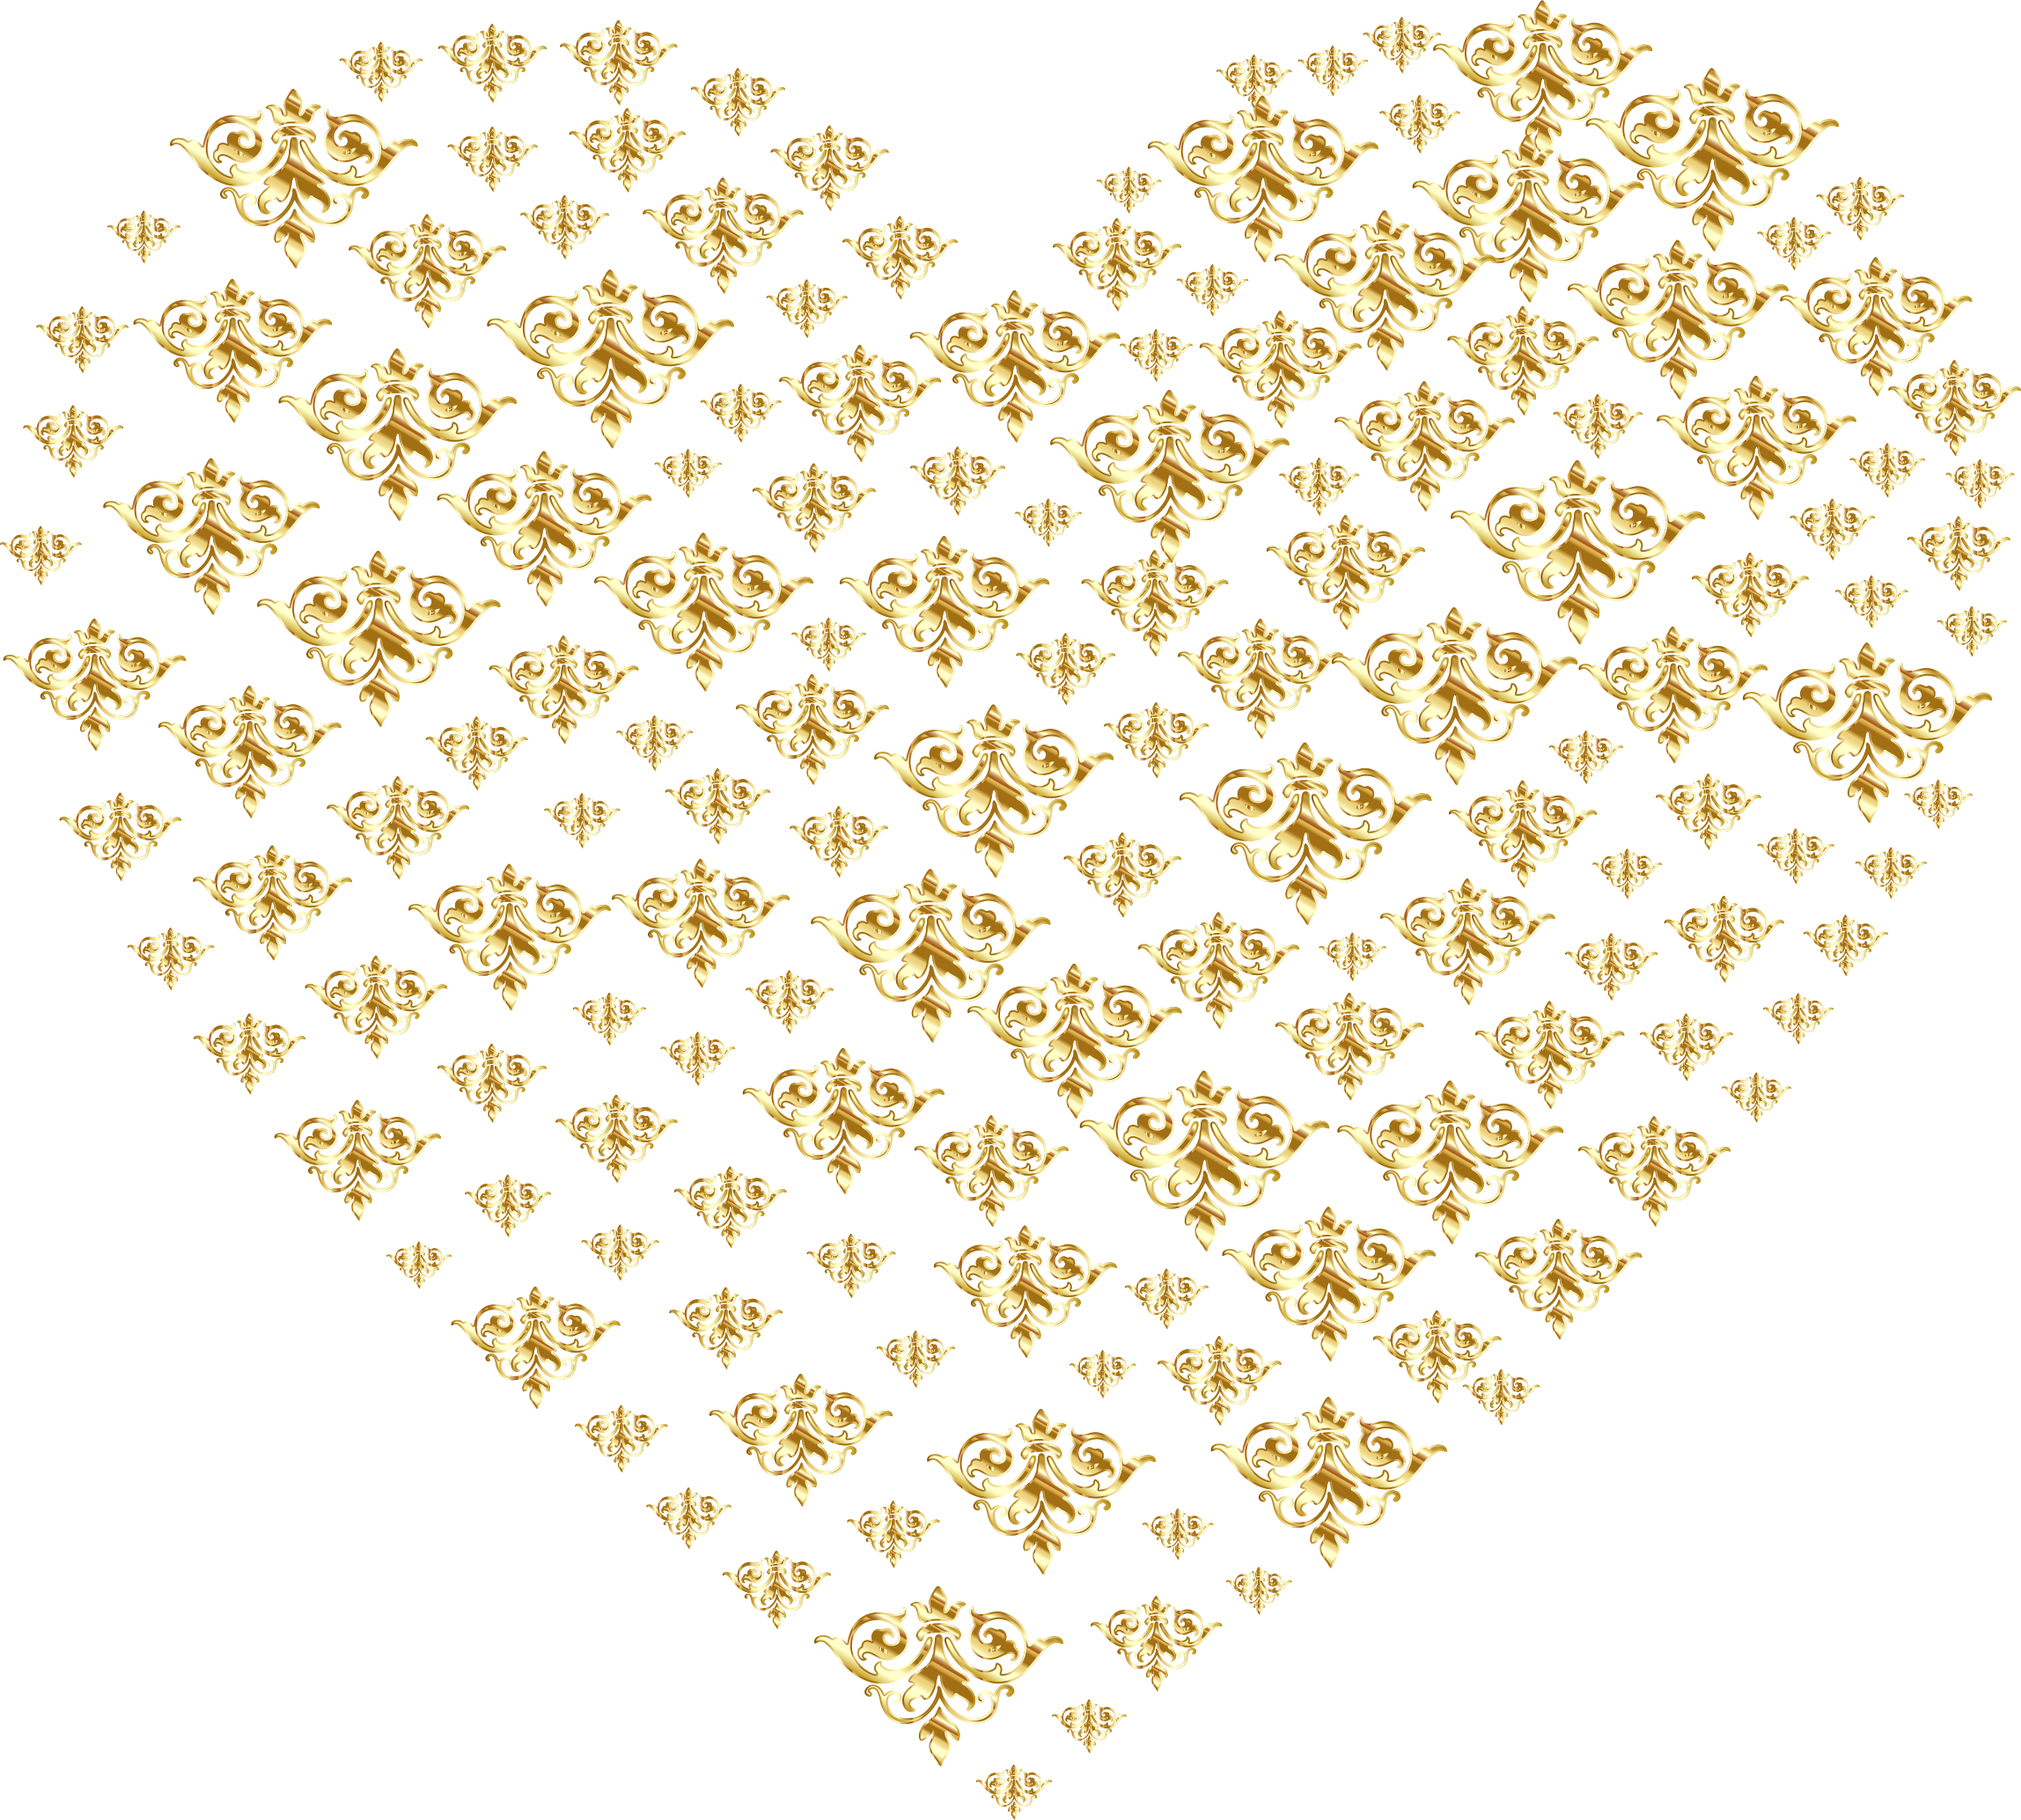 Gold Damask Heart No Background by GDJ